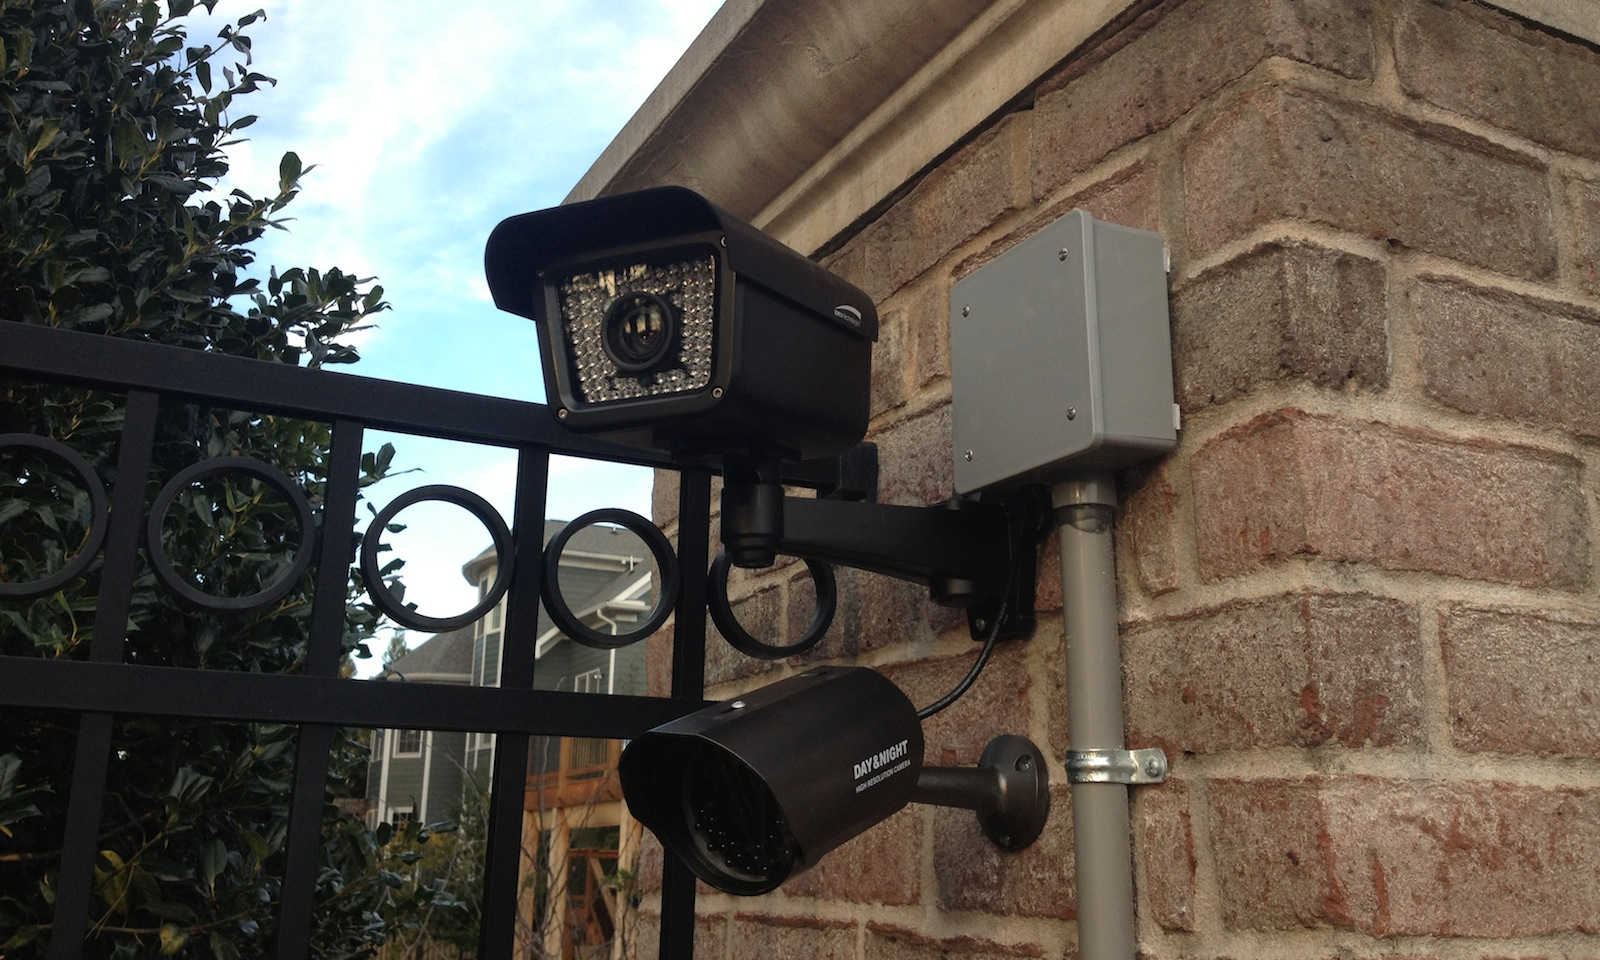 Hoa Gate Cameras Lane Electronics Amp Alarm Systems Inc